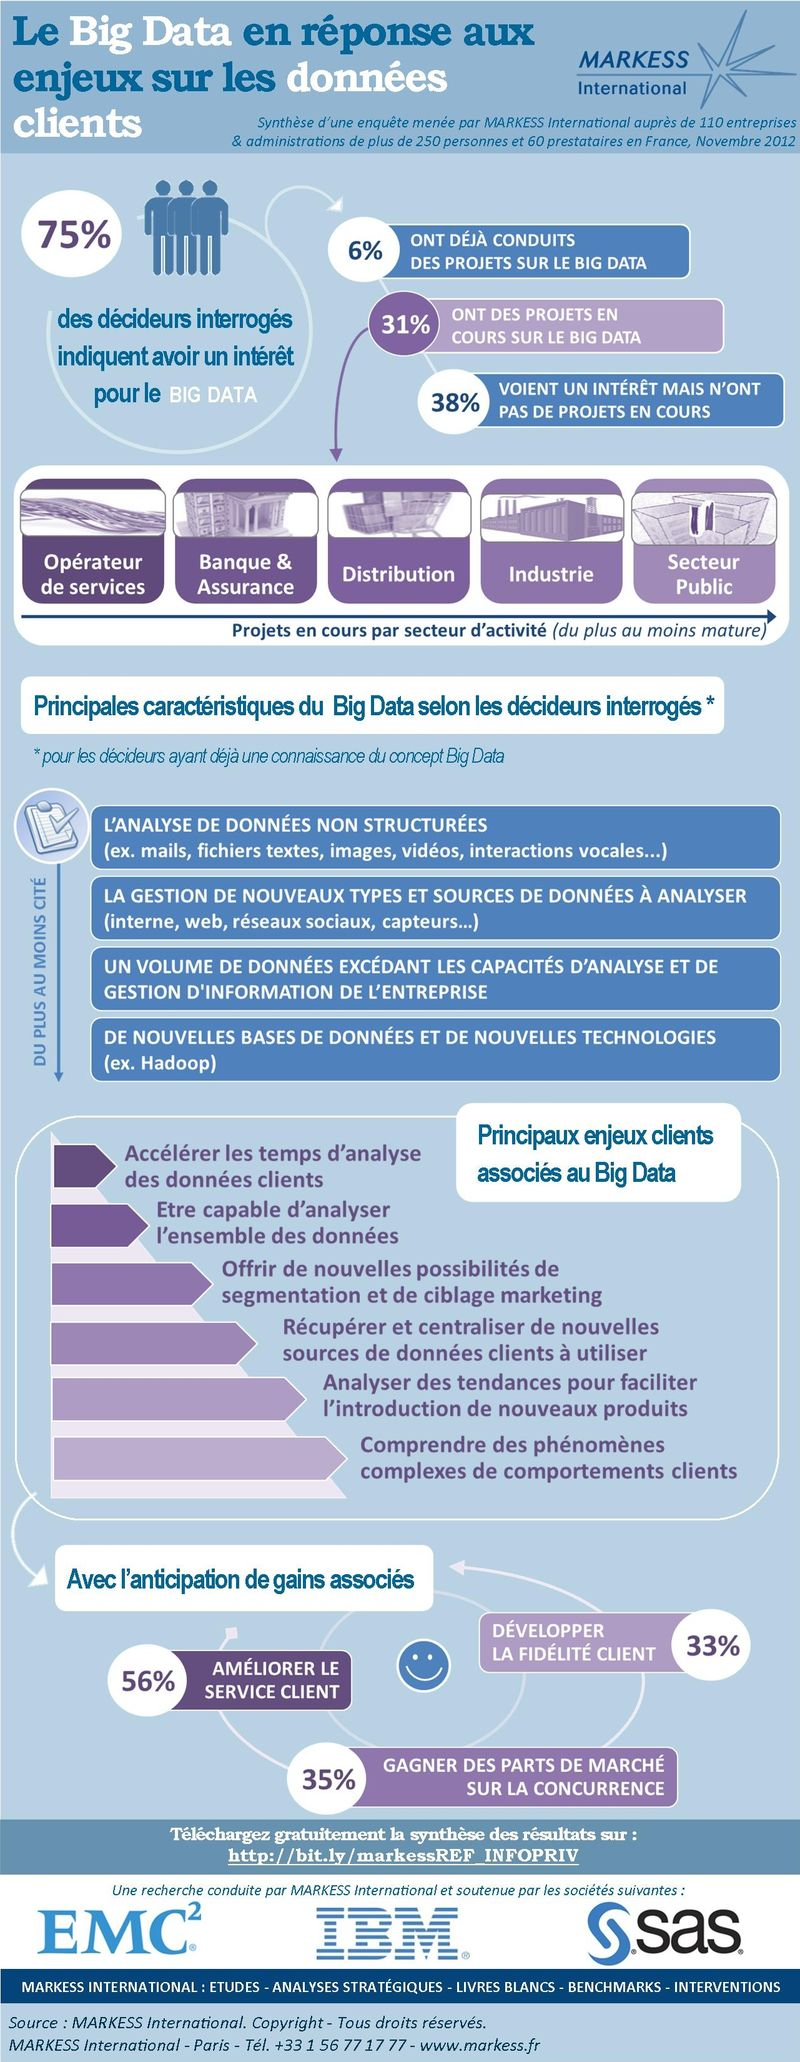 infographie big data markess